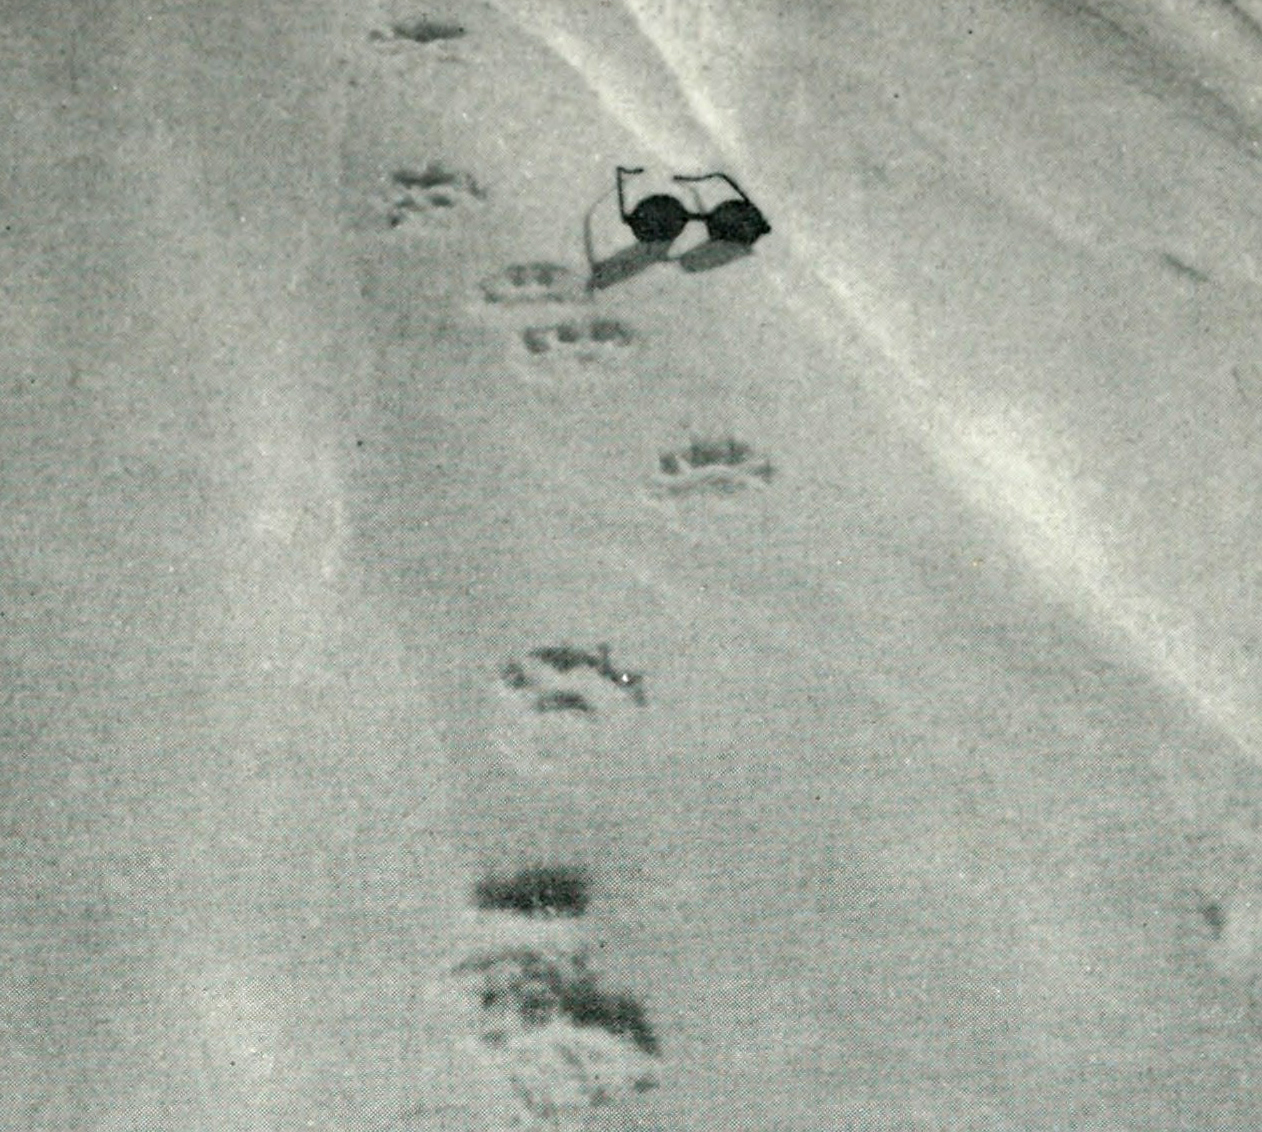 Animal Tracking Quiz, Question 1 - Can you identify this animal track?